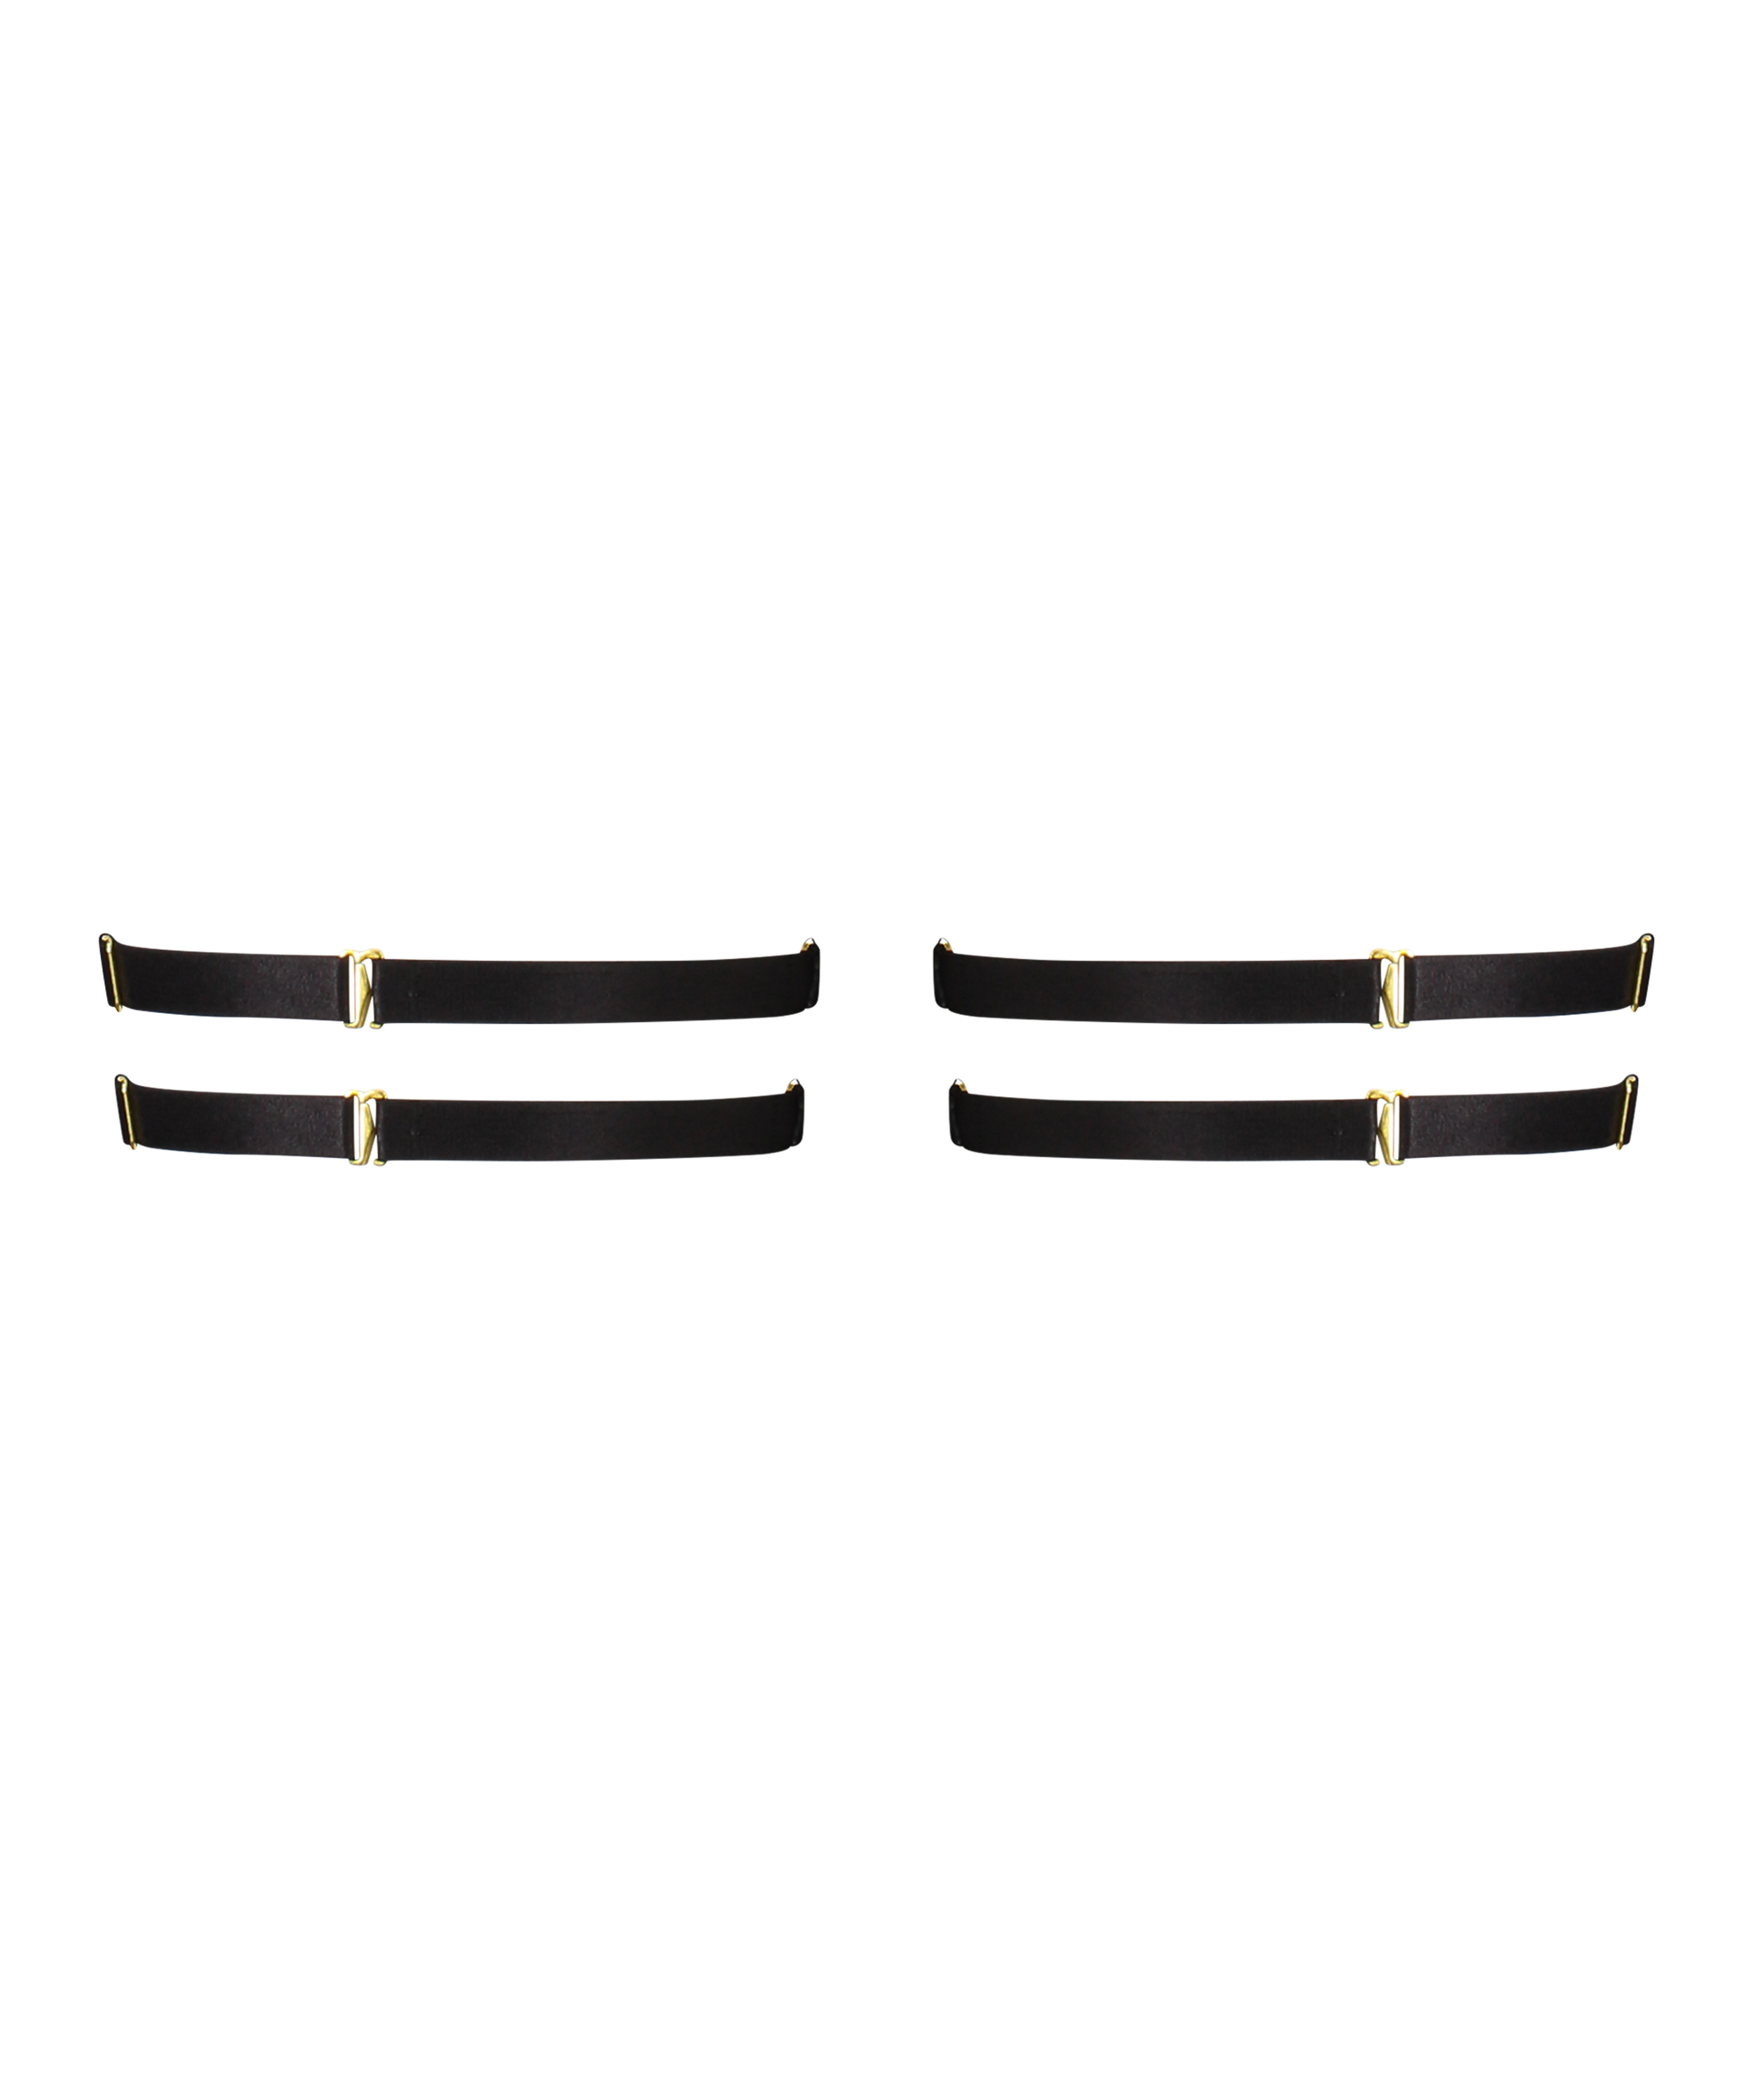 Heart Private Hold Up Suspenders, Black, main